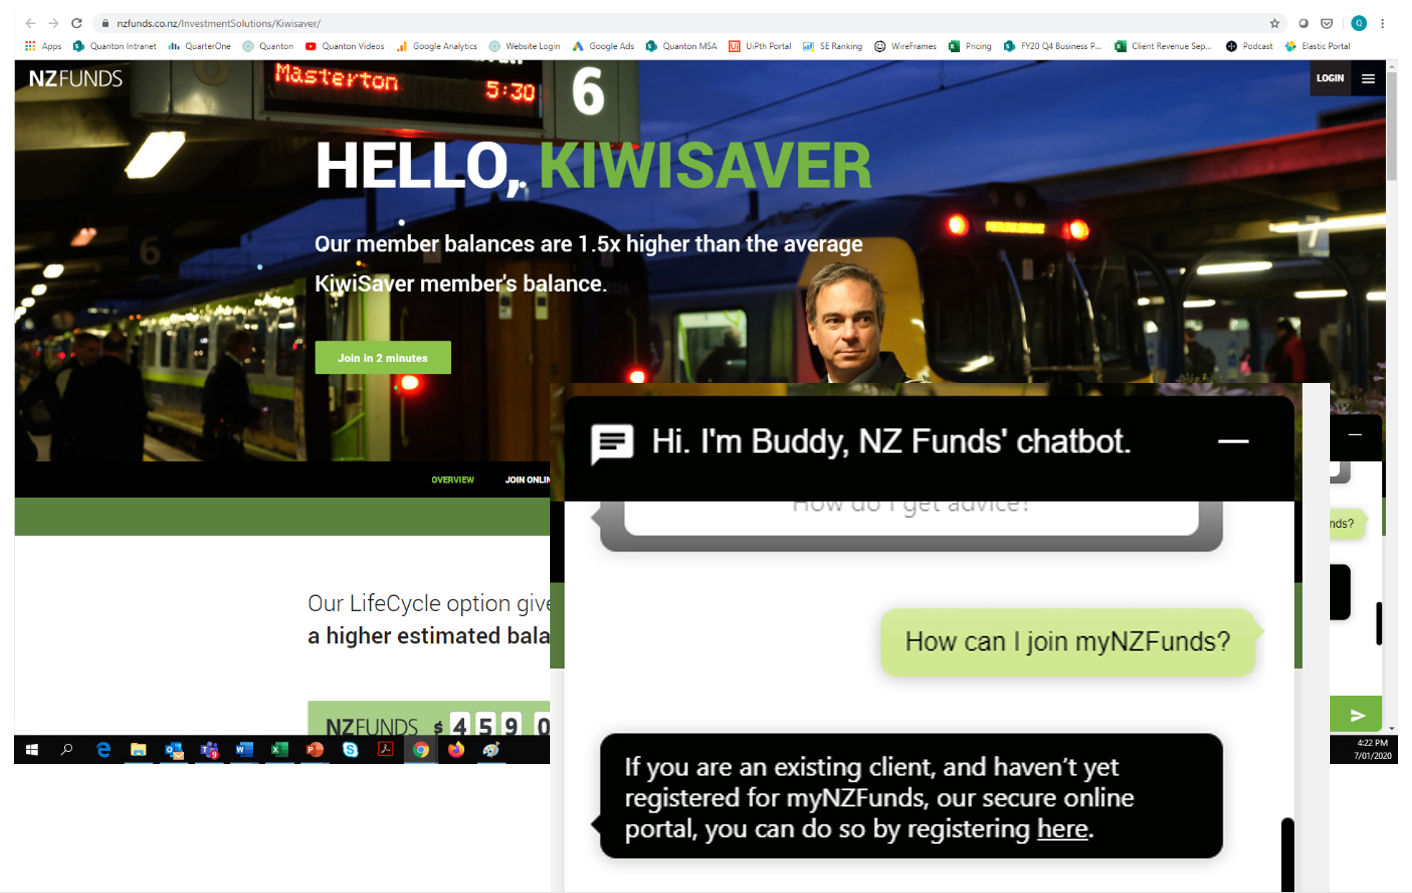 NZ Funds Chatbot Example